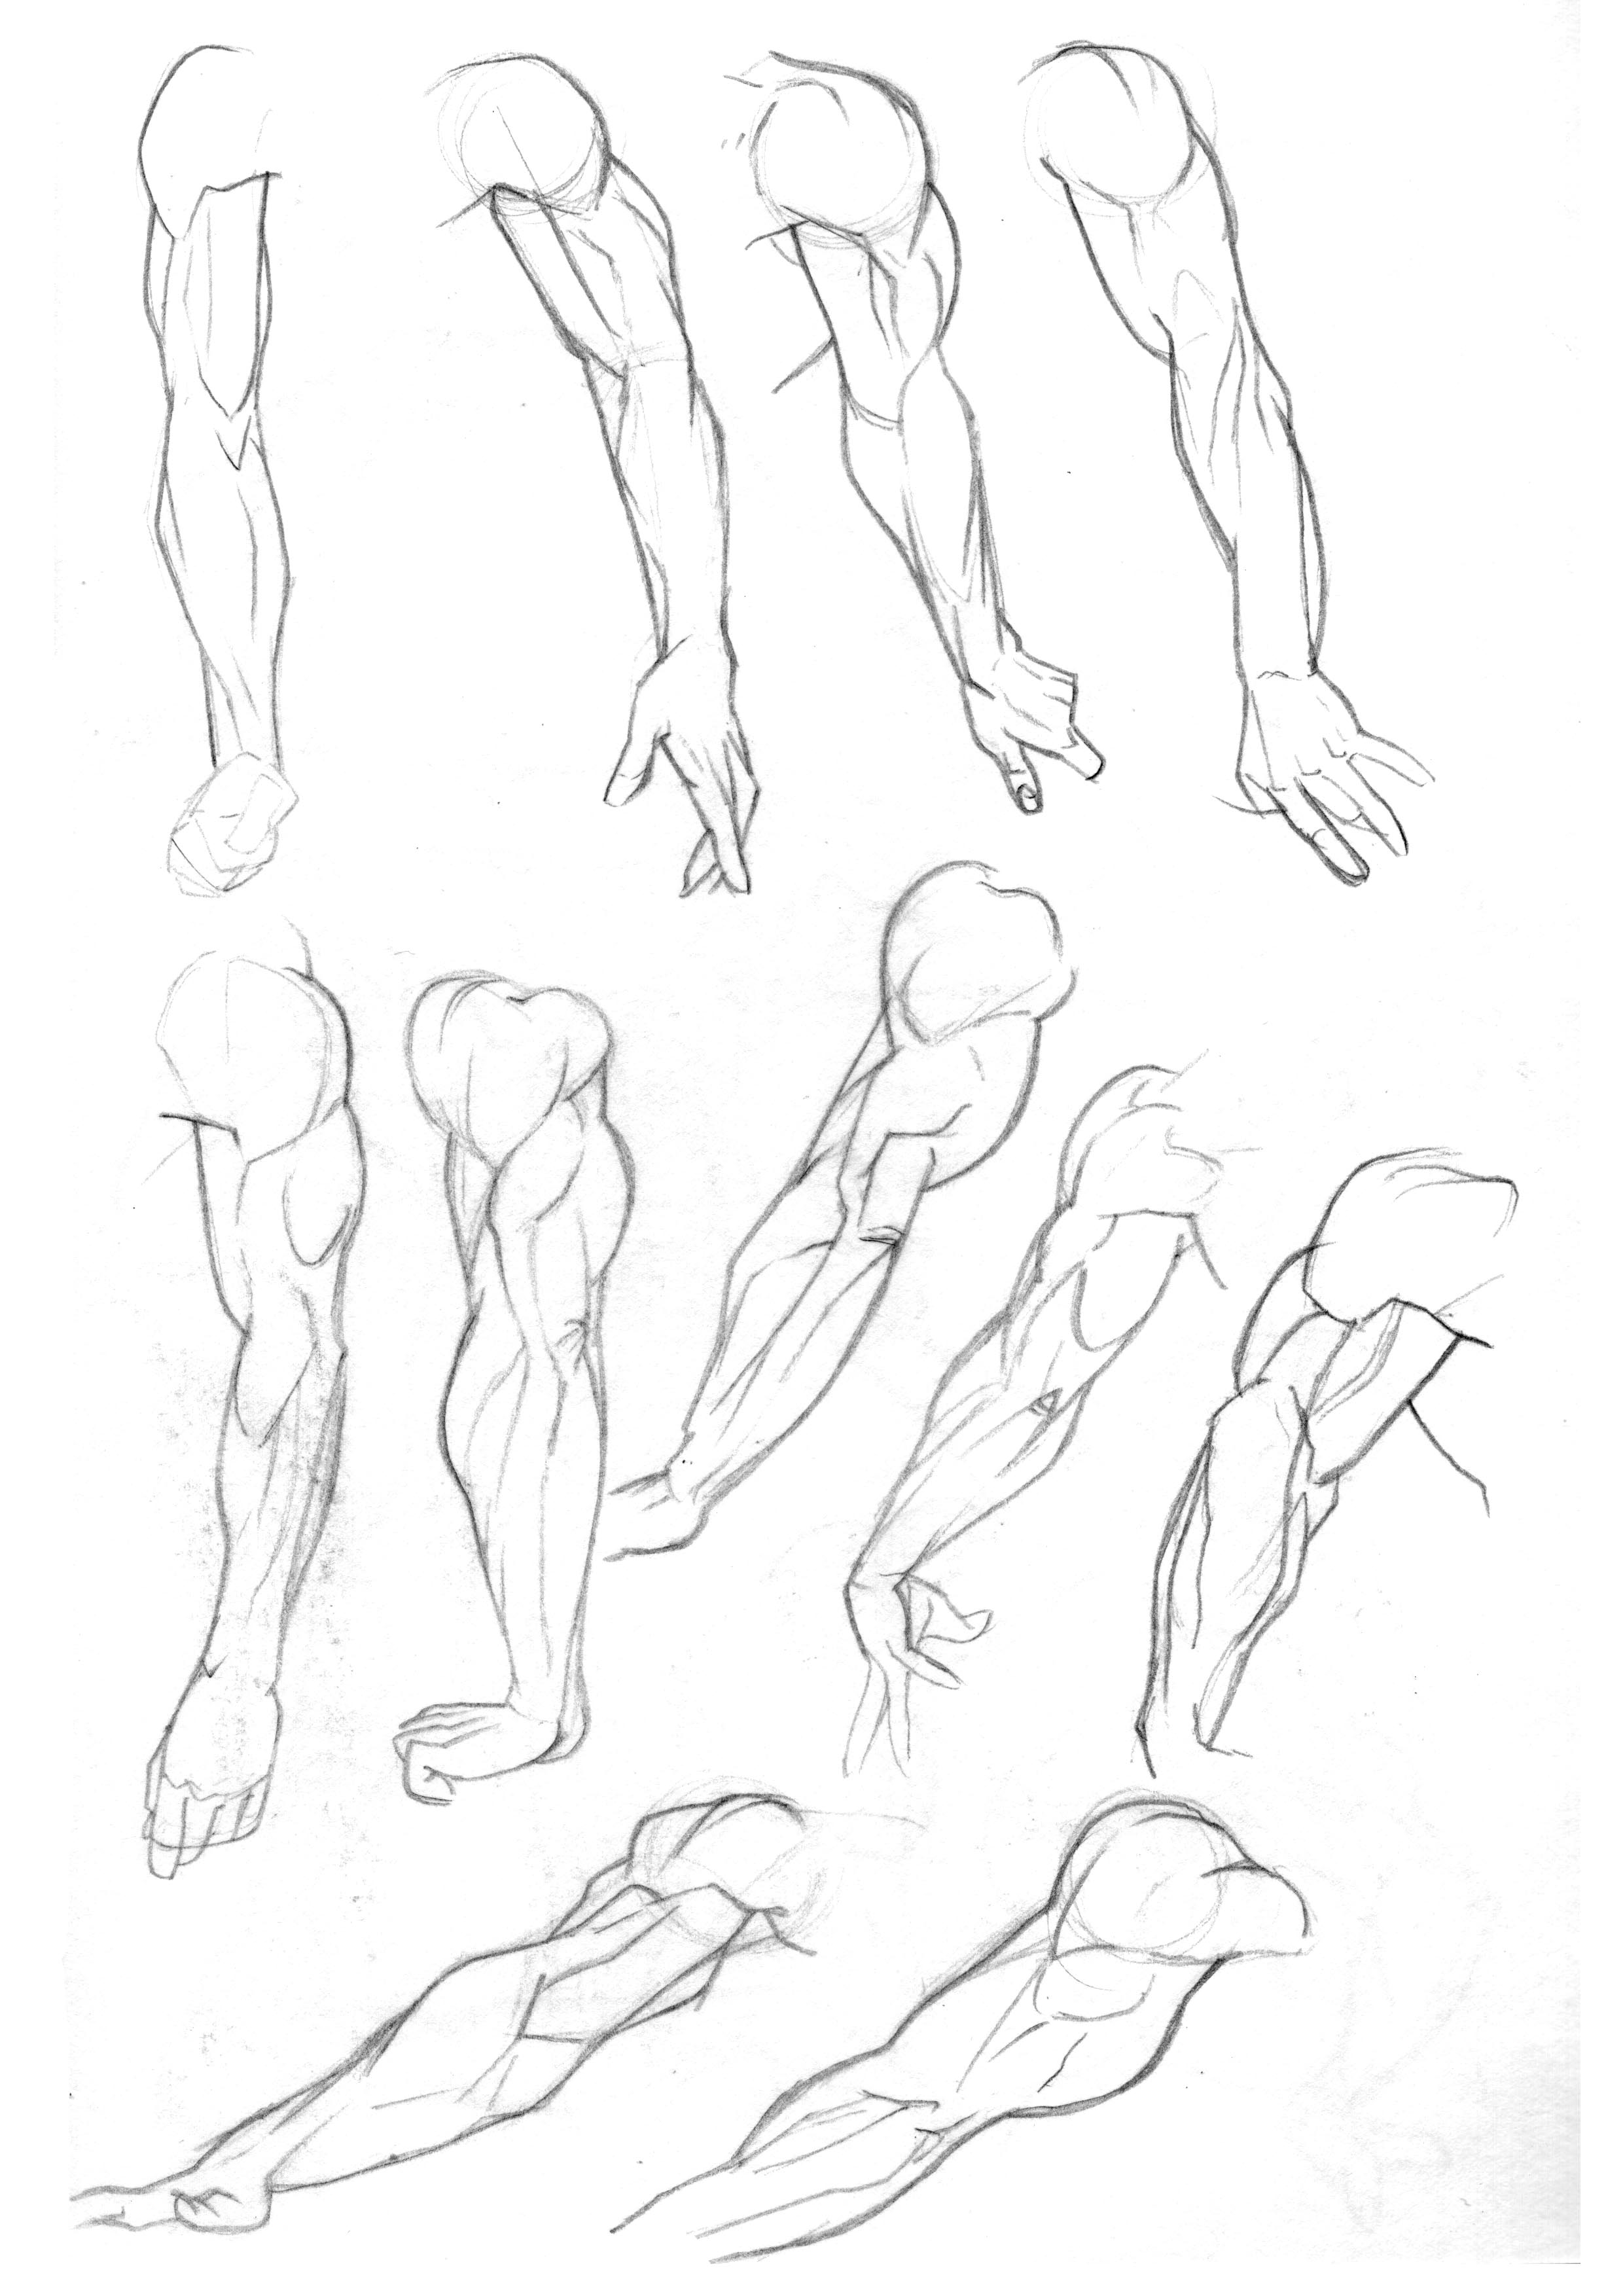 2480x3508 More From The Early Days. Tried Focussing On Triceps And The Back